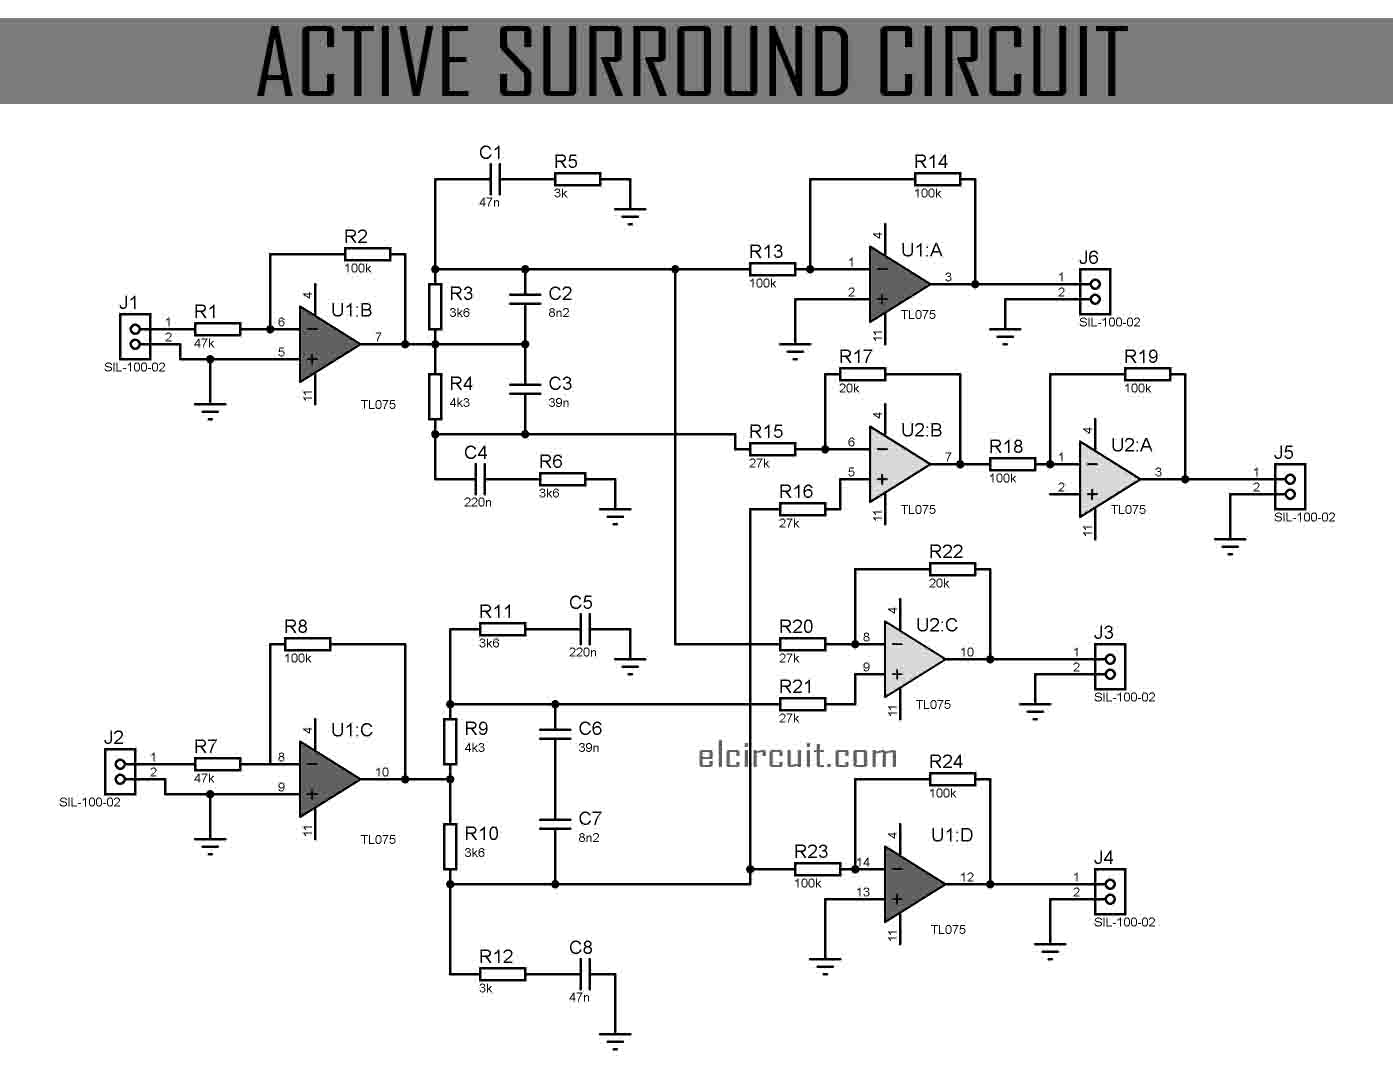 below the active surround sound circuit diagram include regulated power supply 12v  [ 1393 x 1079 Pixel ]